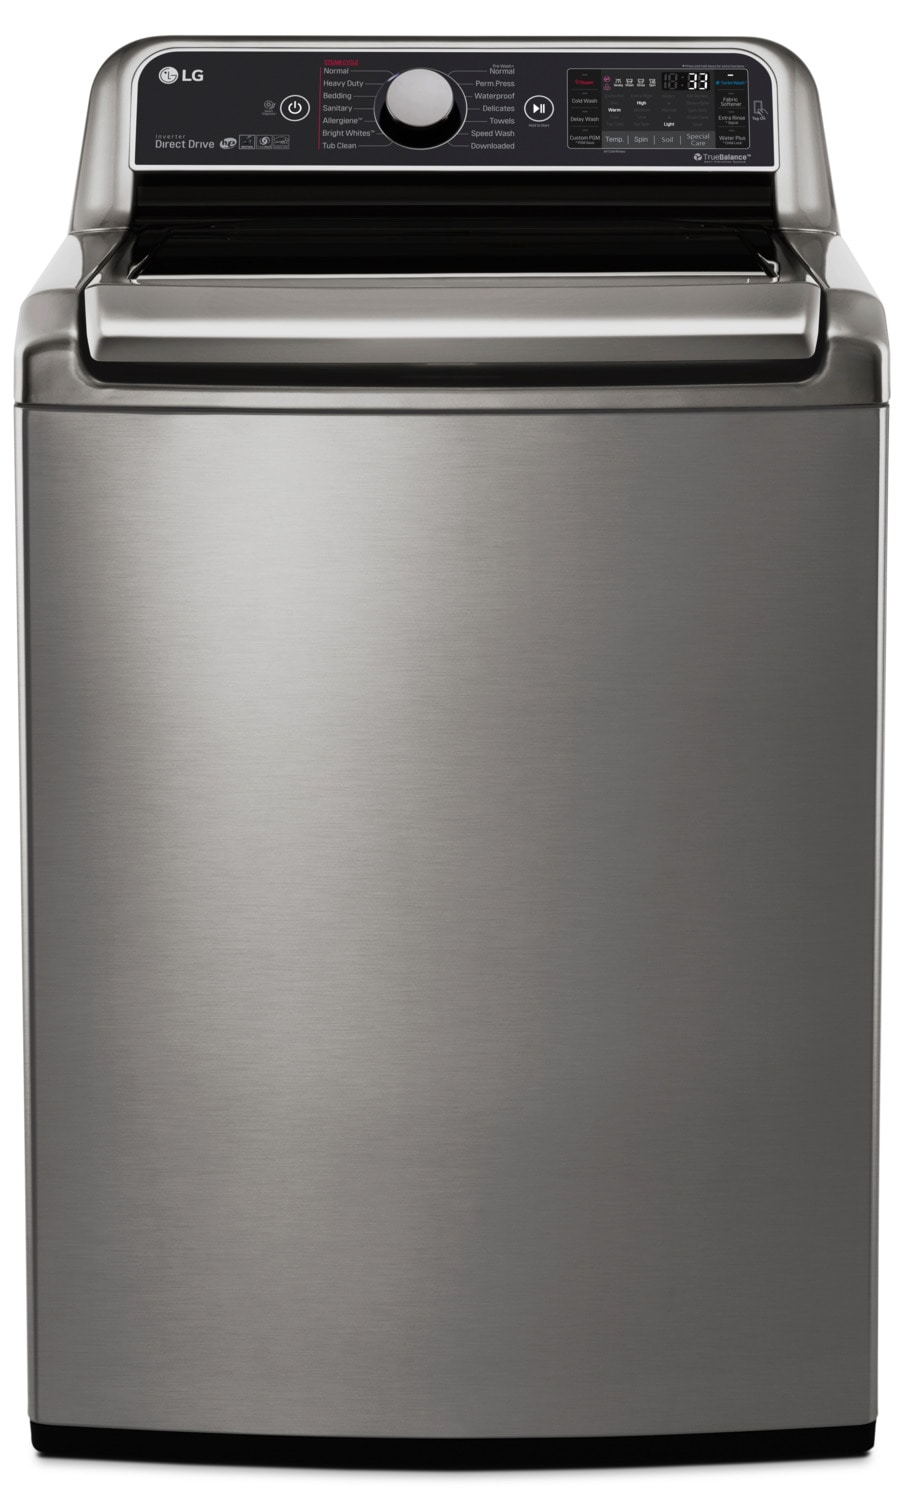 LG 6.0 Cu. Ft. Top-Load Steam™ Washer with TurboWash - WT7600HVA